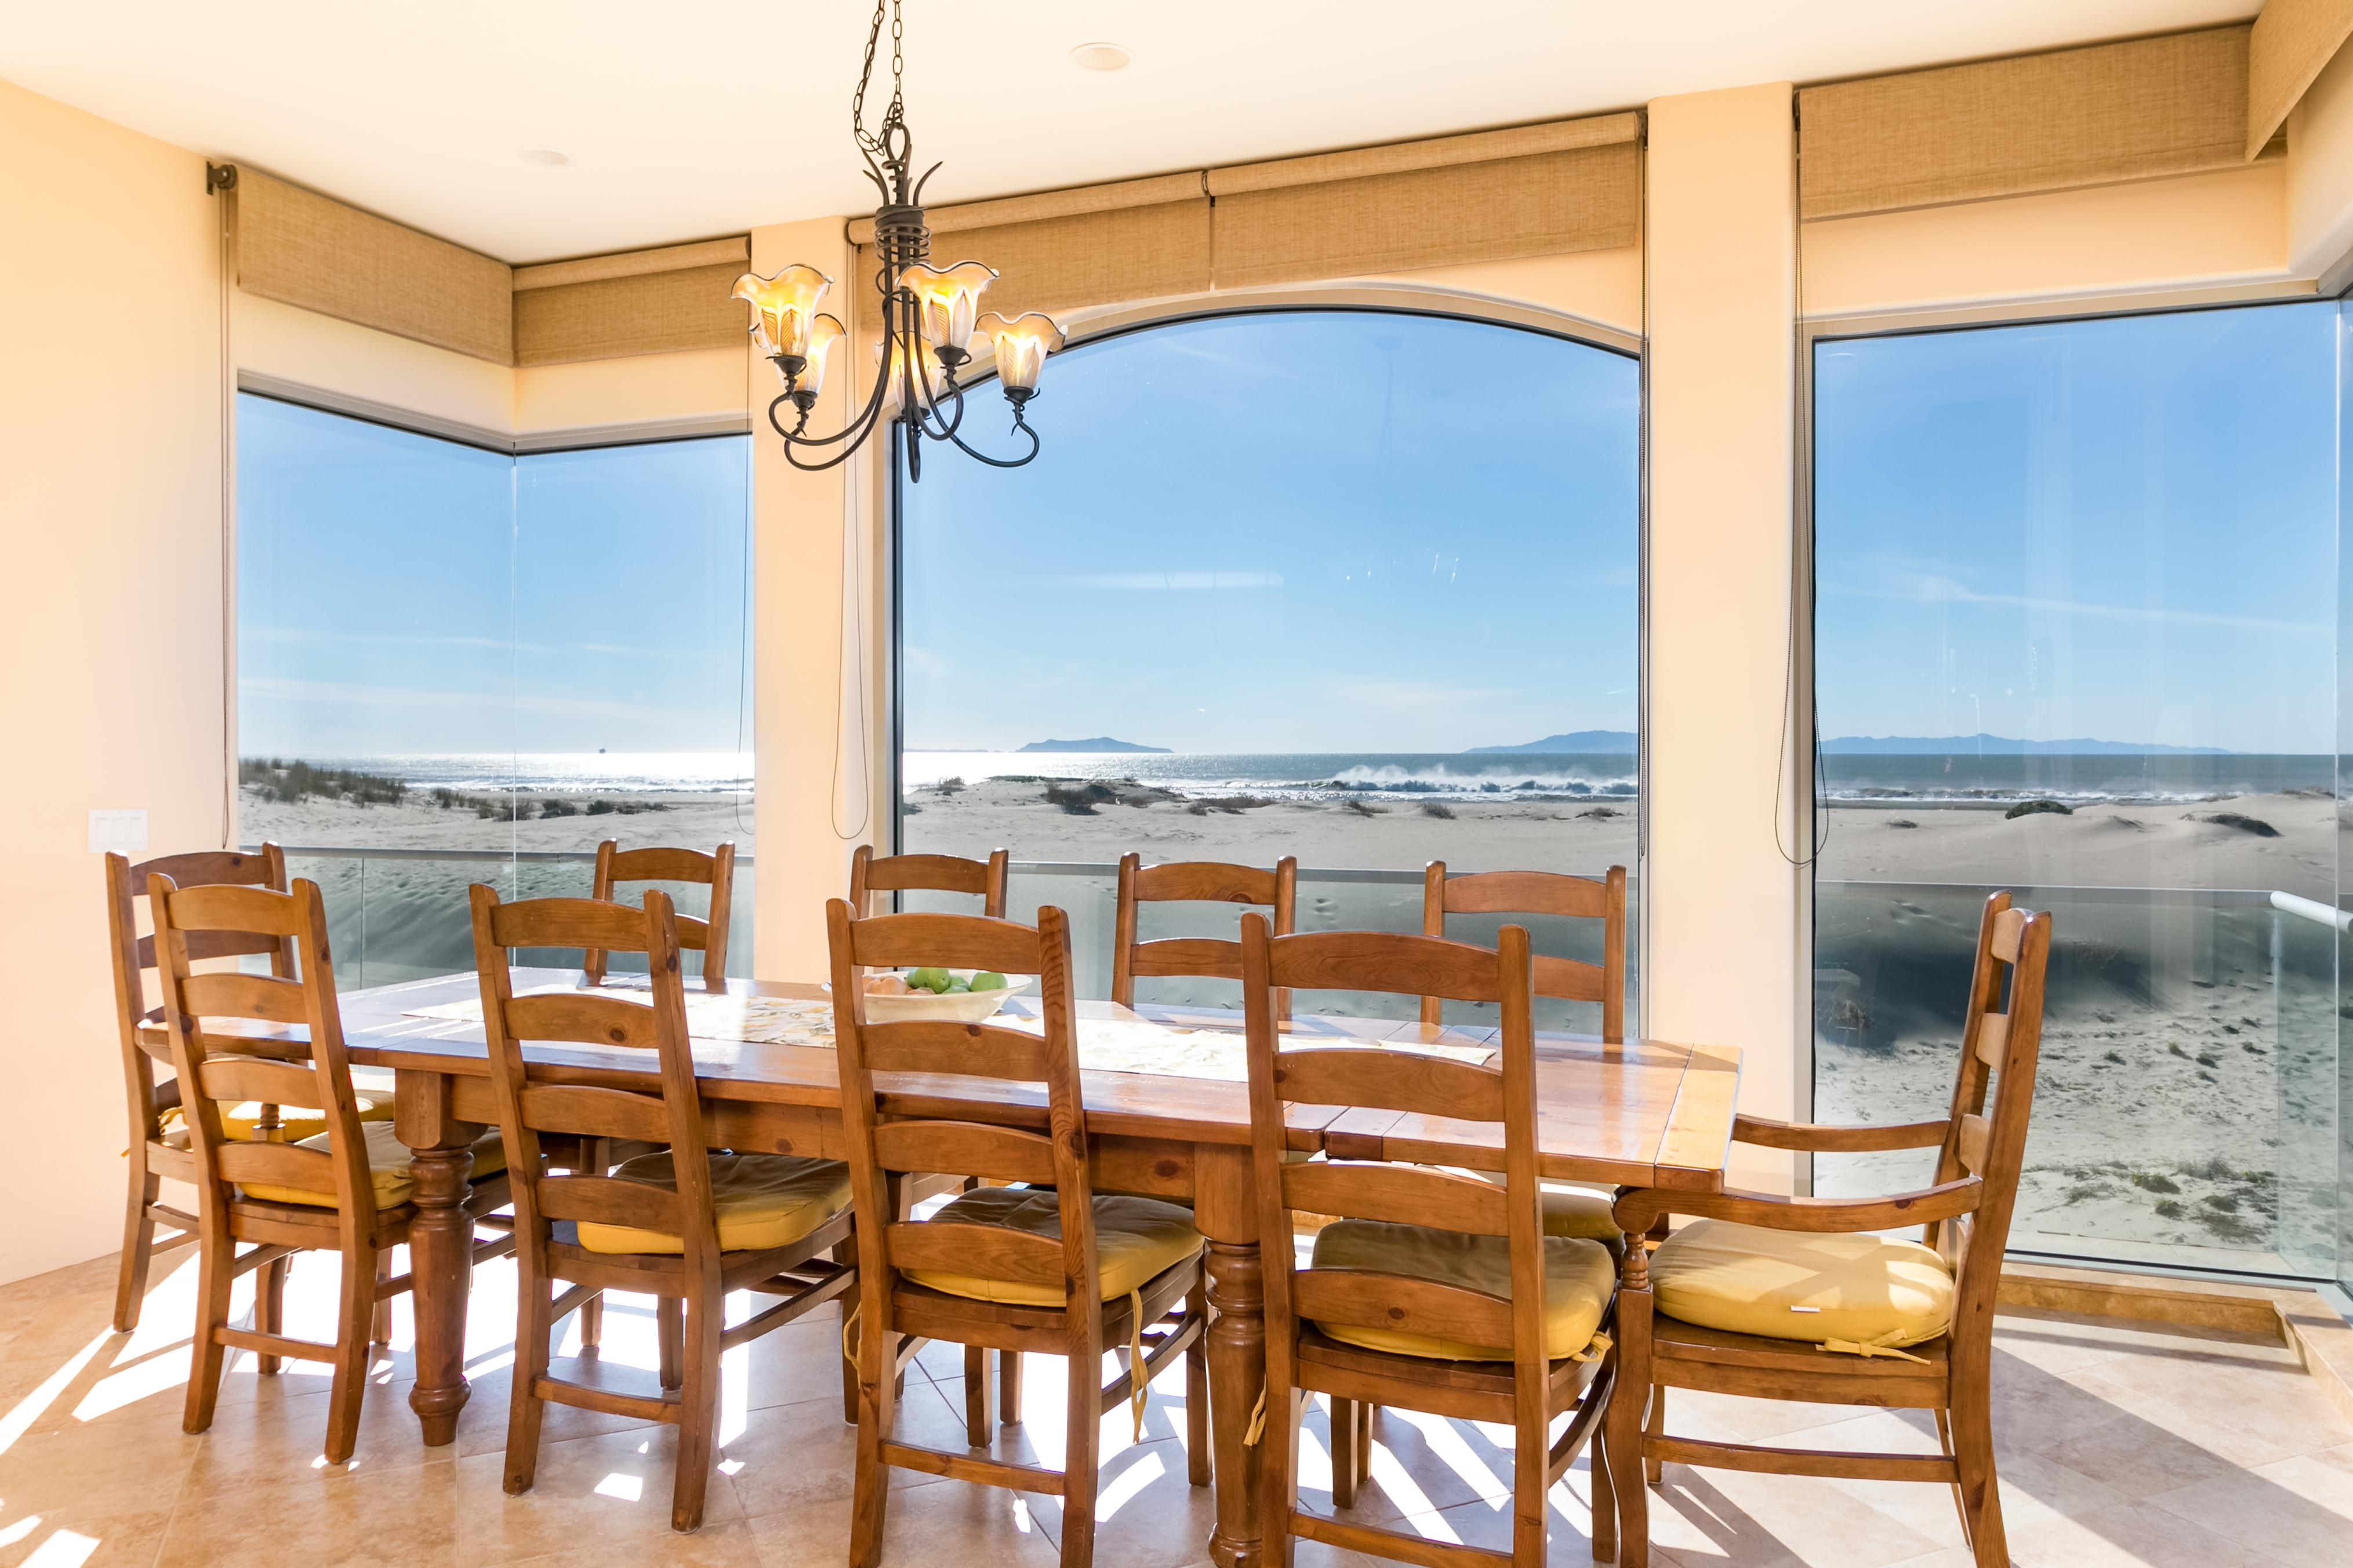 The dining area seats 10, with a sweeping outlook of the beach and North Pacific Ocean.